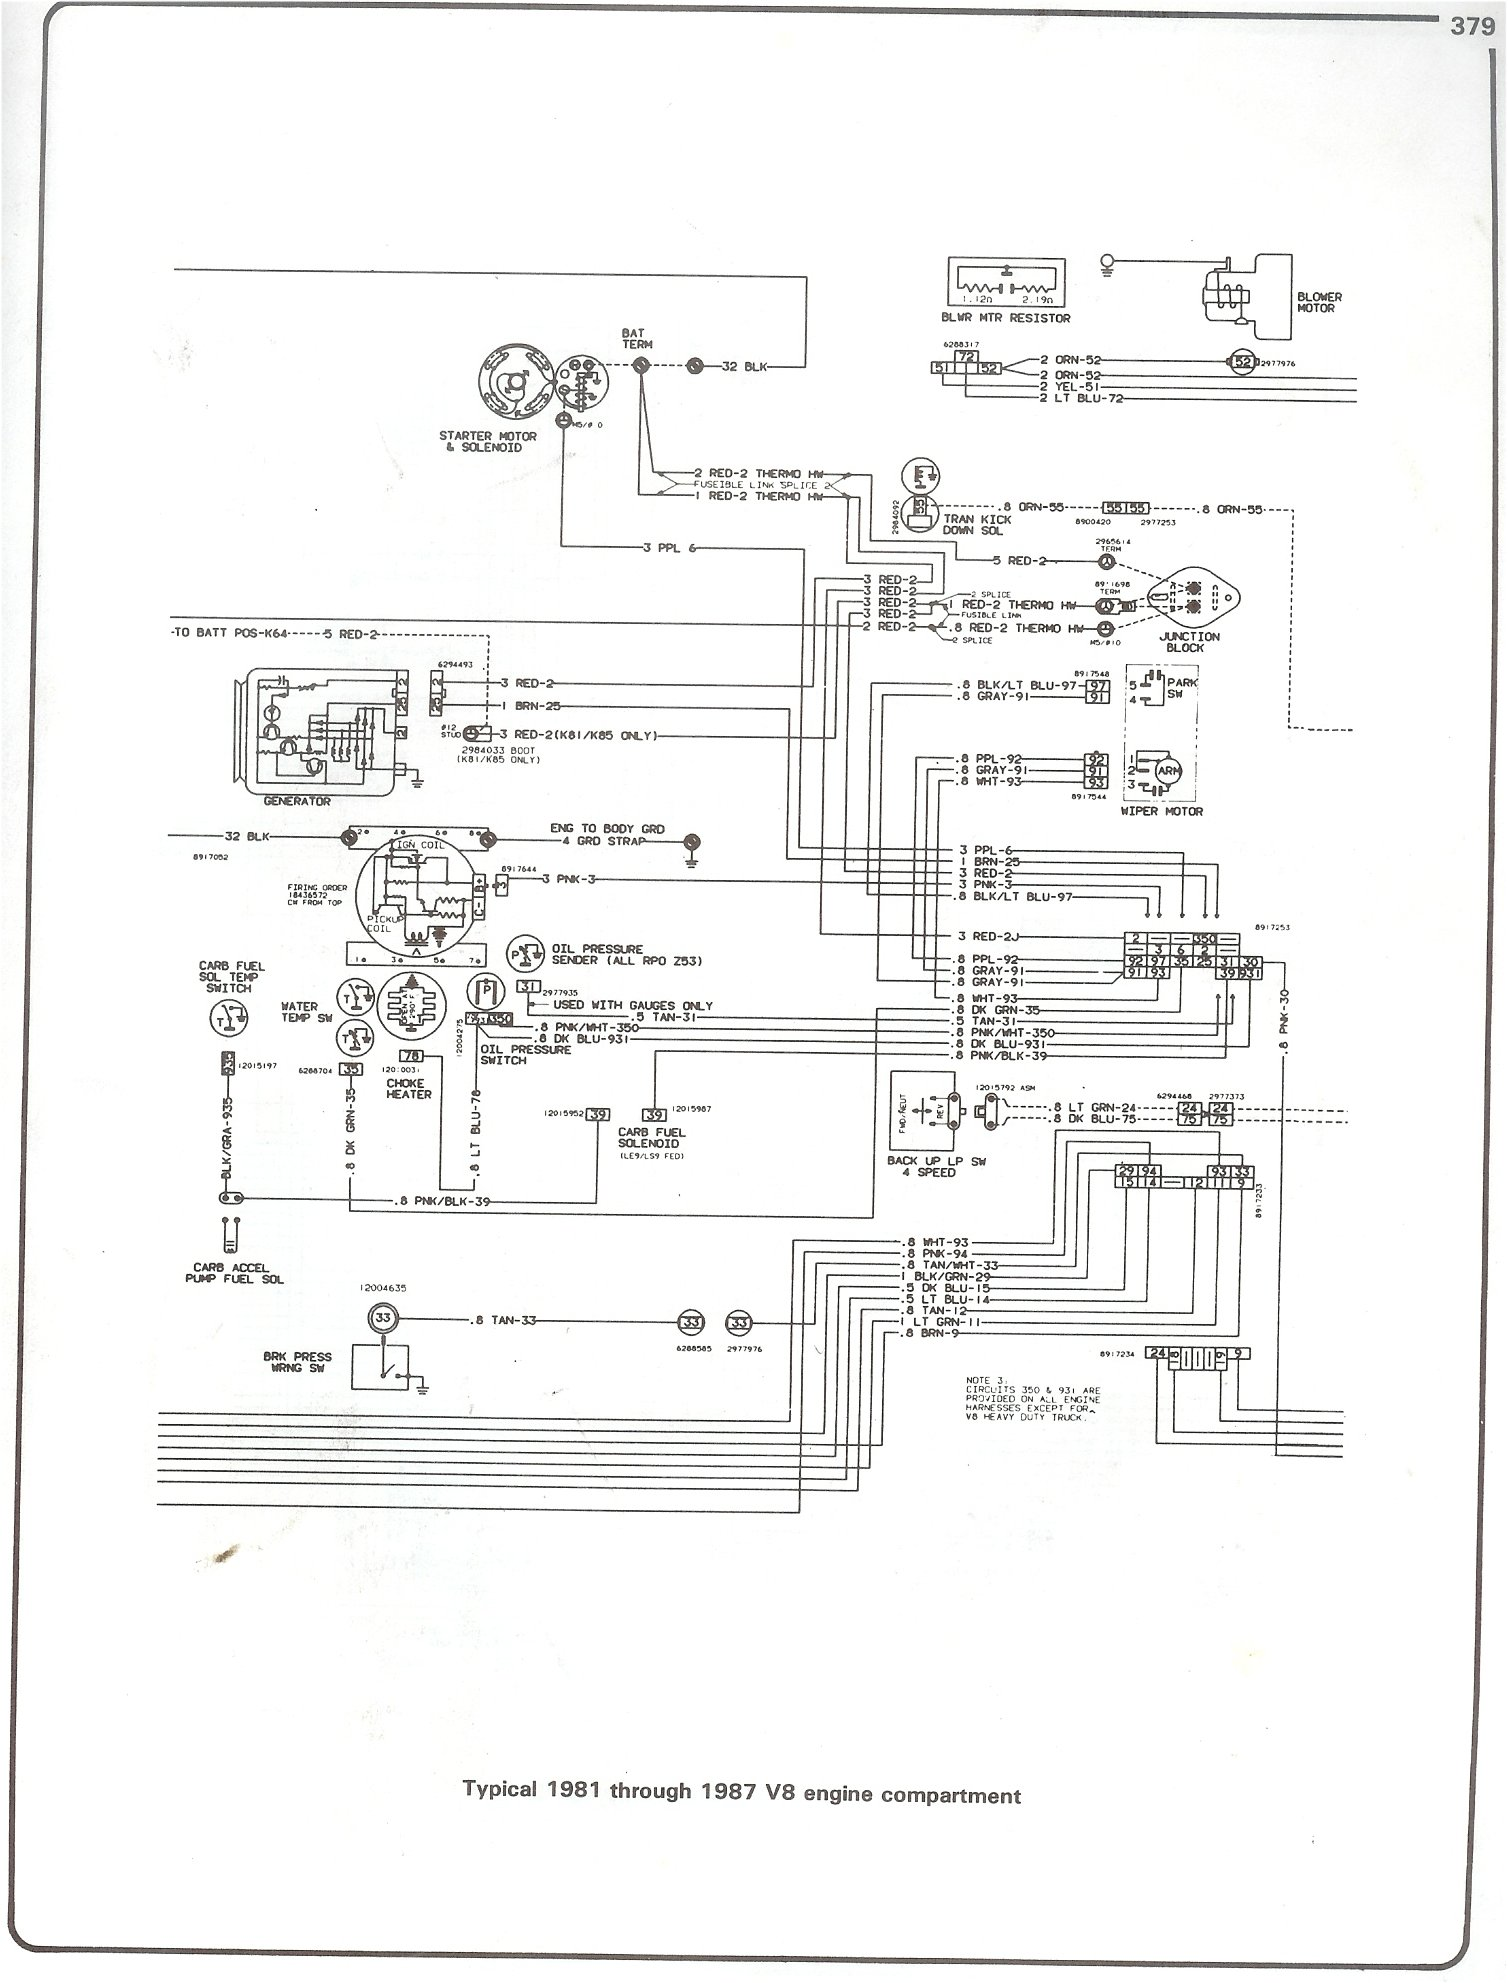 87 Chevy Alternator Wiring Diagram Land 96 S10 Complete 73 Diagrams 3 Wire Gm 81 V8 Engine Compartment